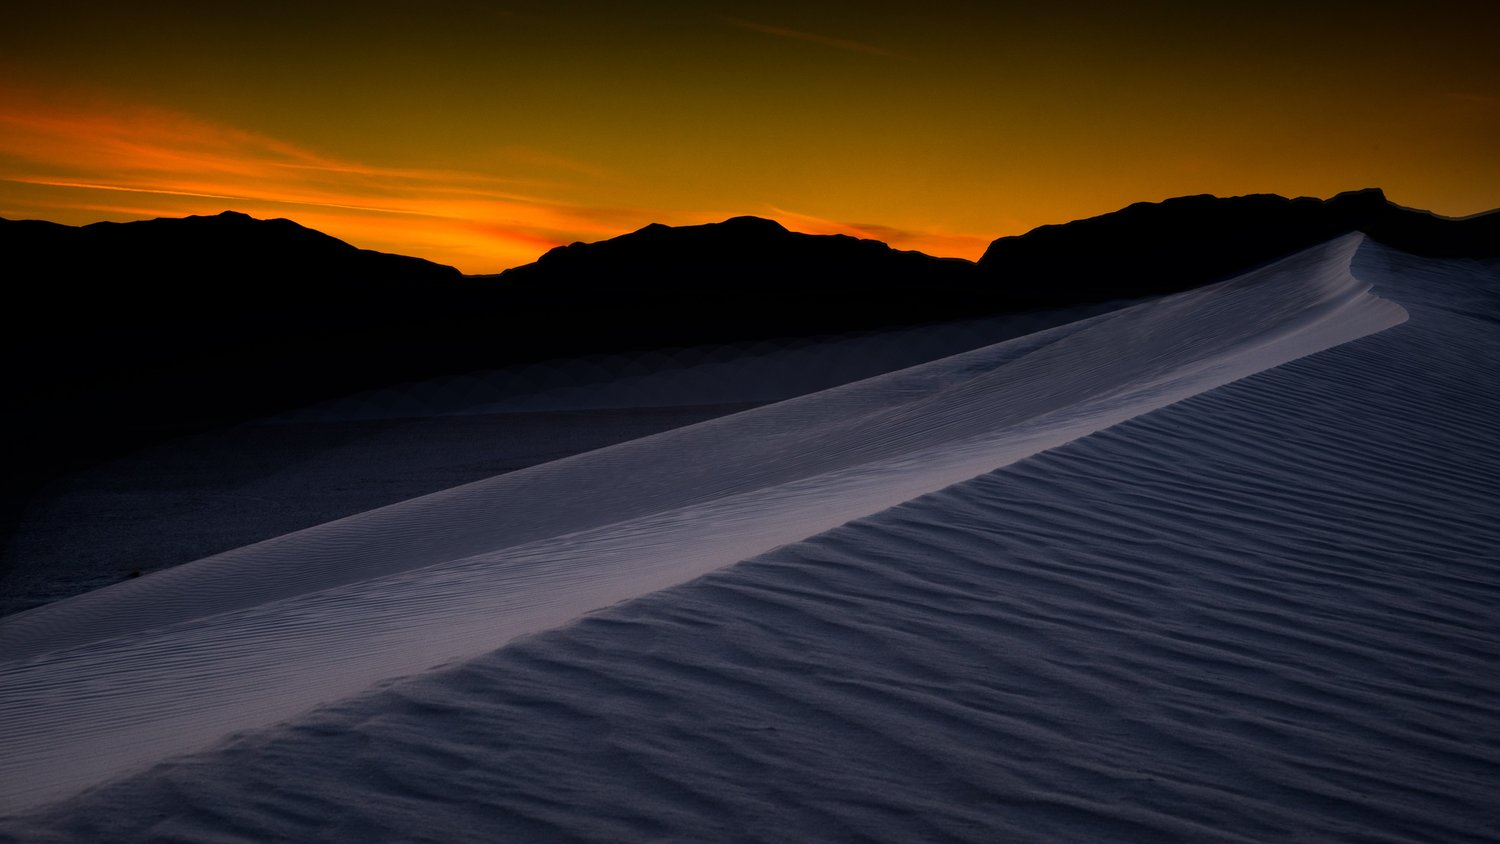 I pre-visualized this White Sands shot and only had to walk a few feet off the road to get it.